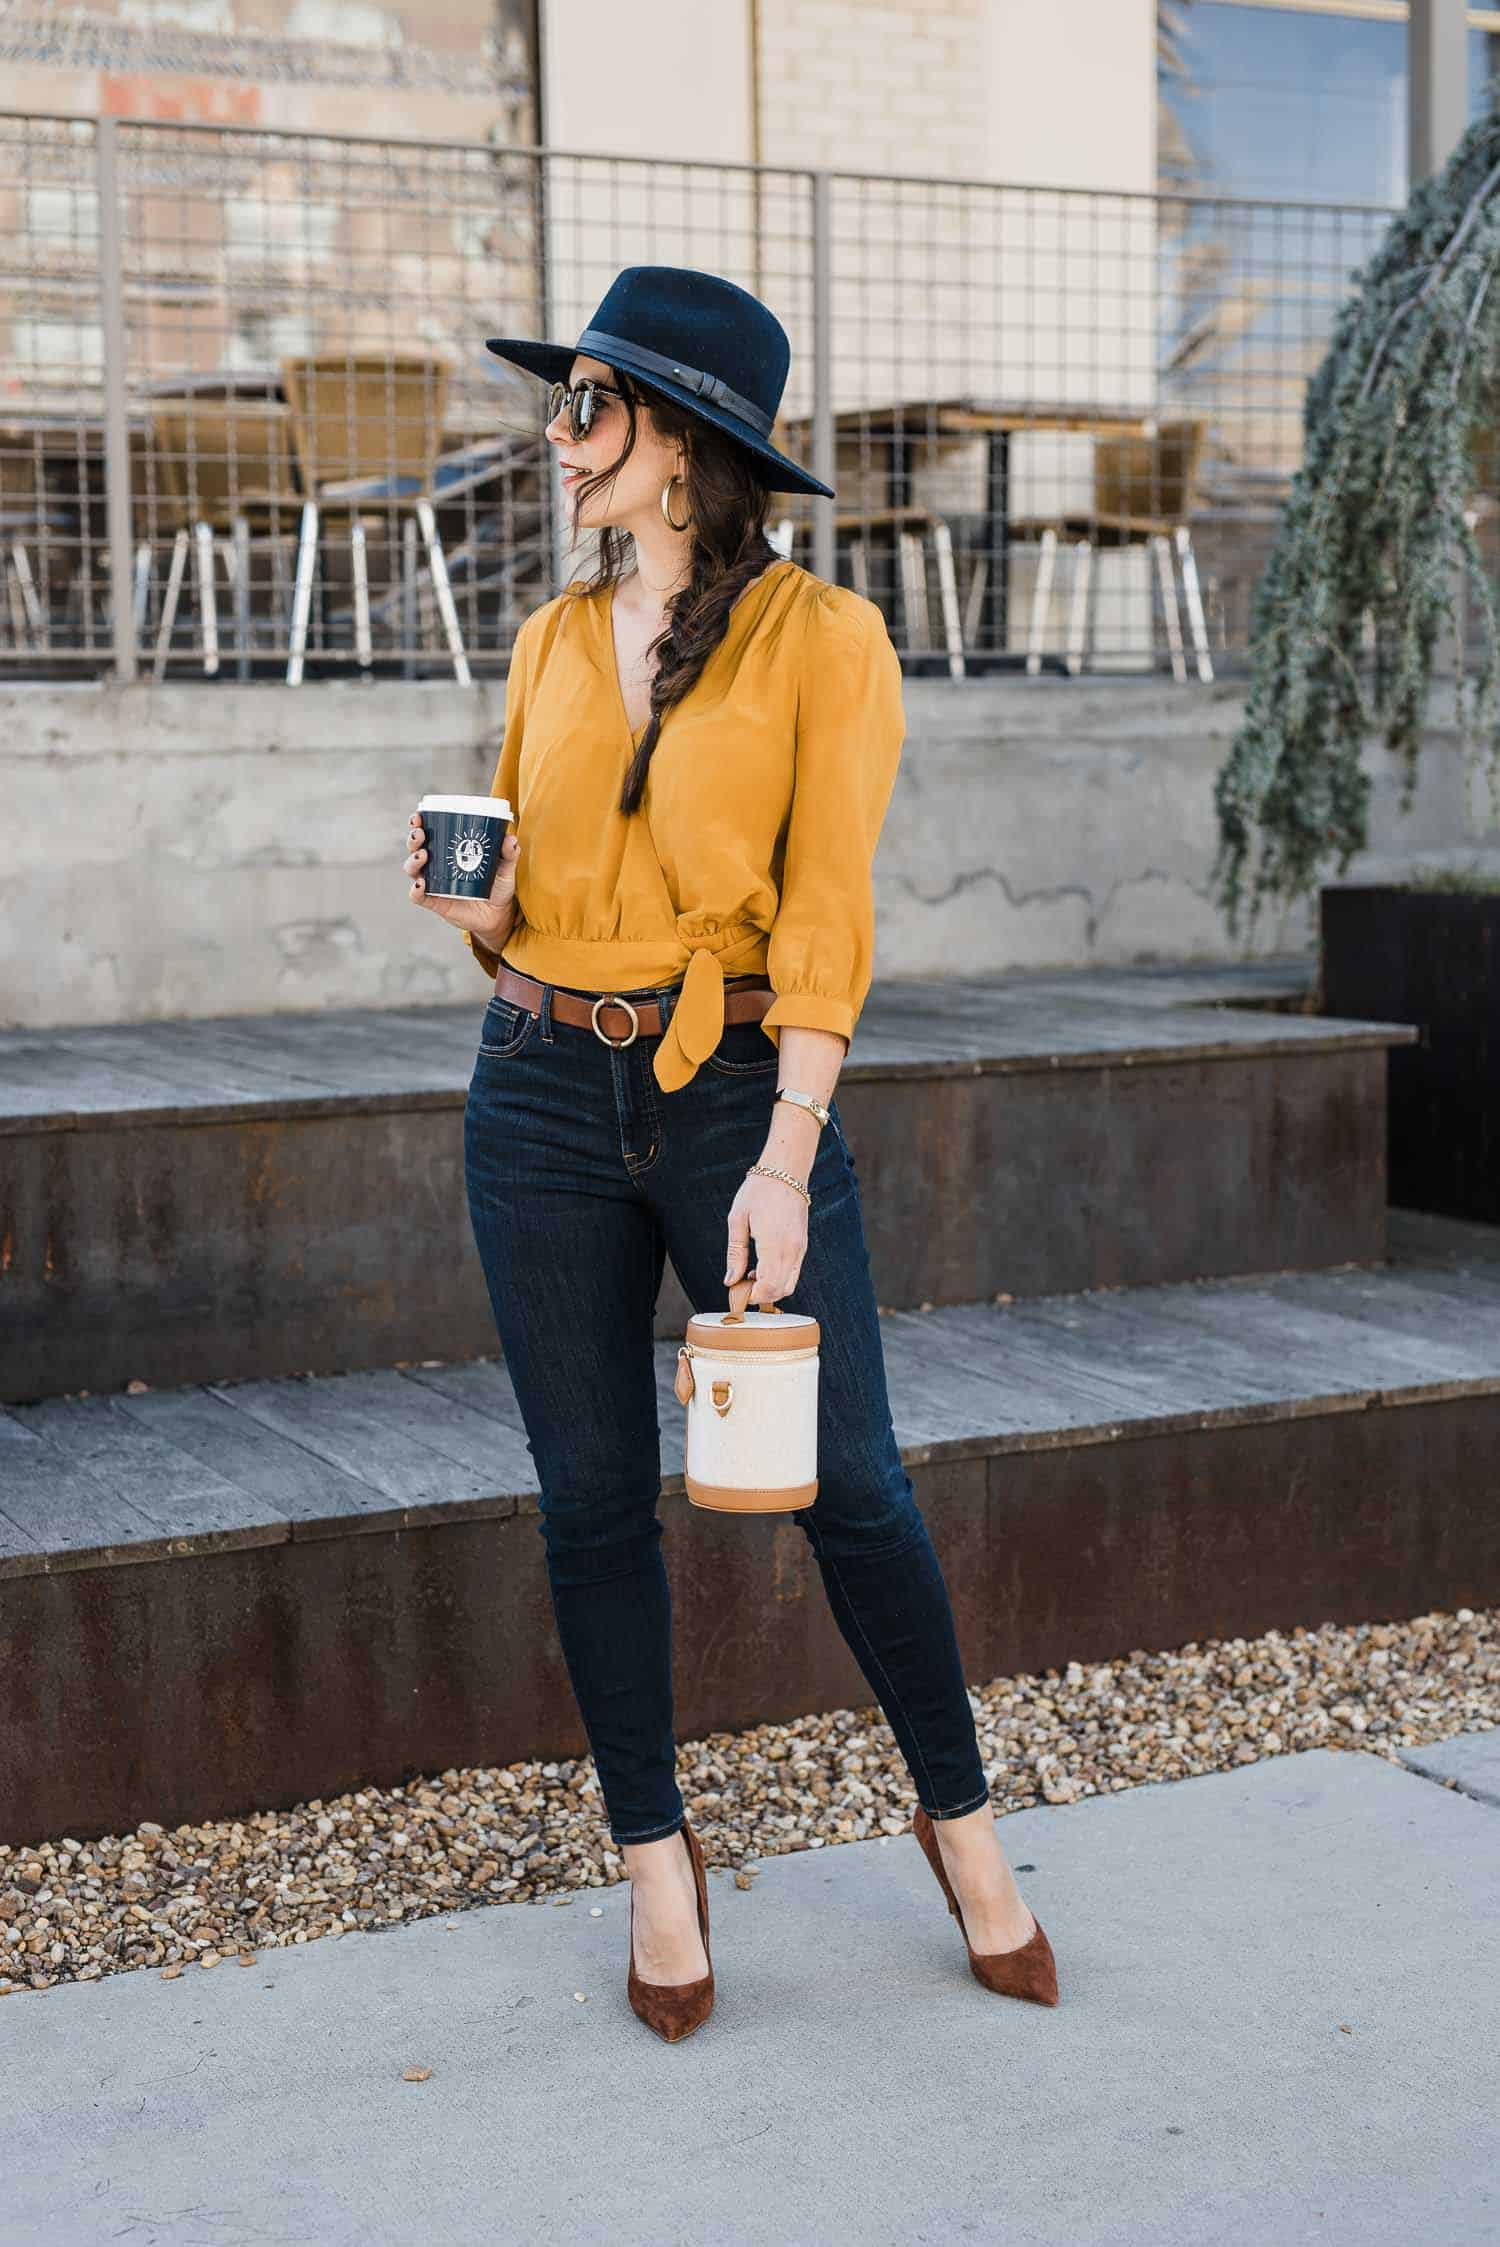 Jessica Camerata is wearing a mustard silk top, jeans and brown heels